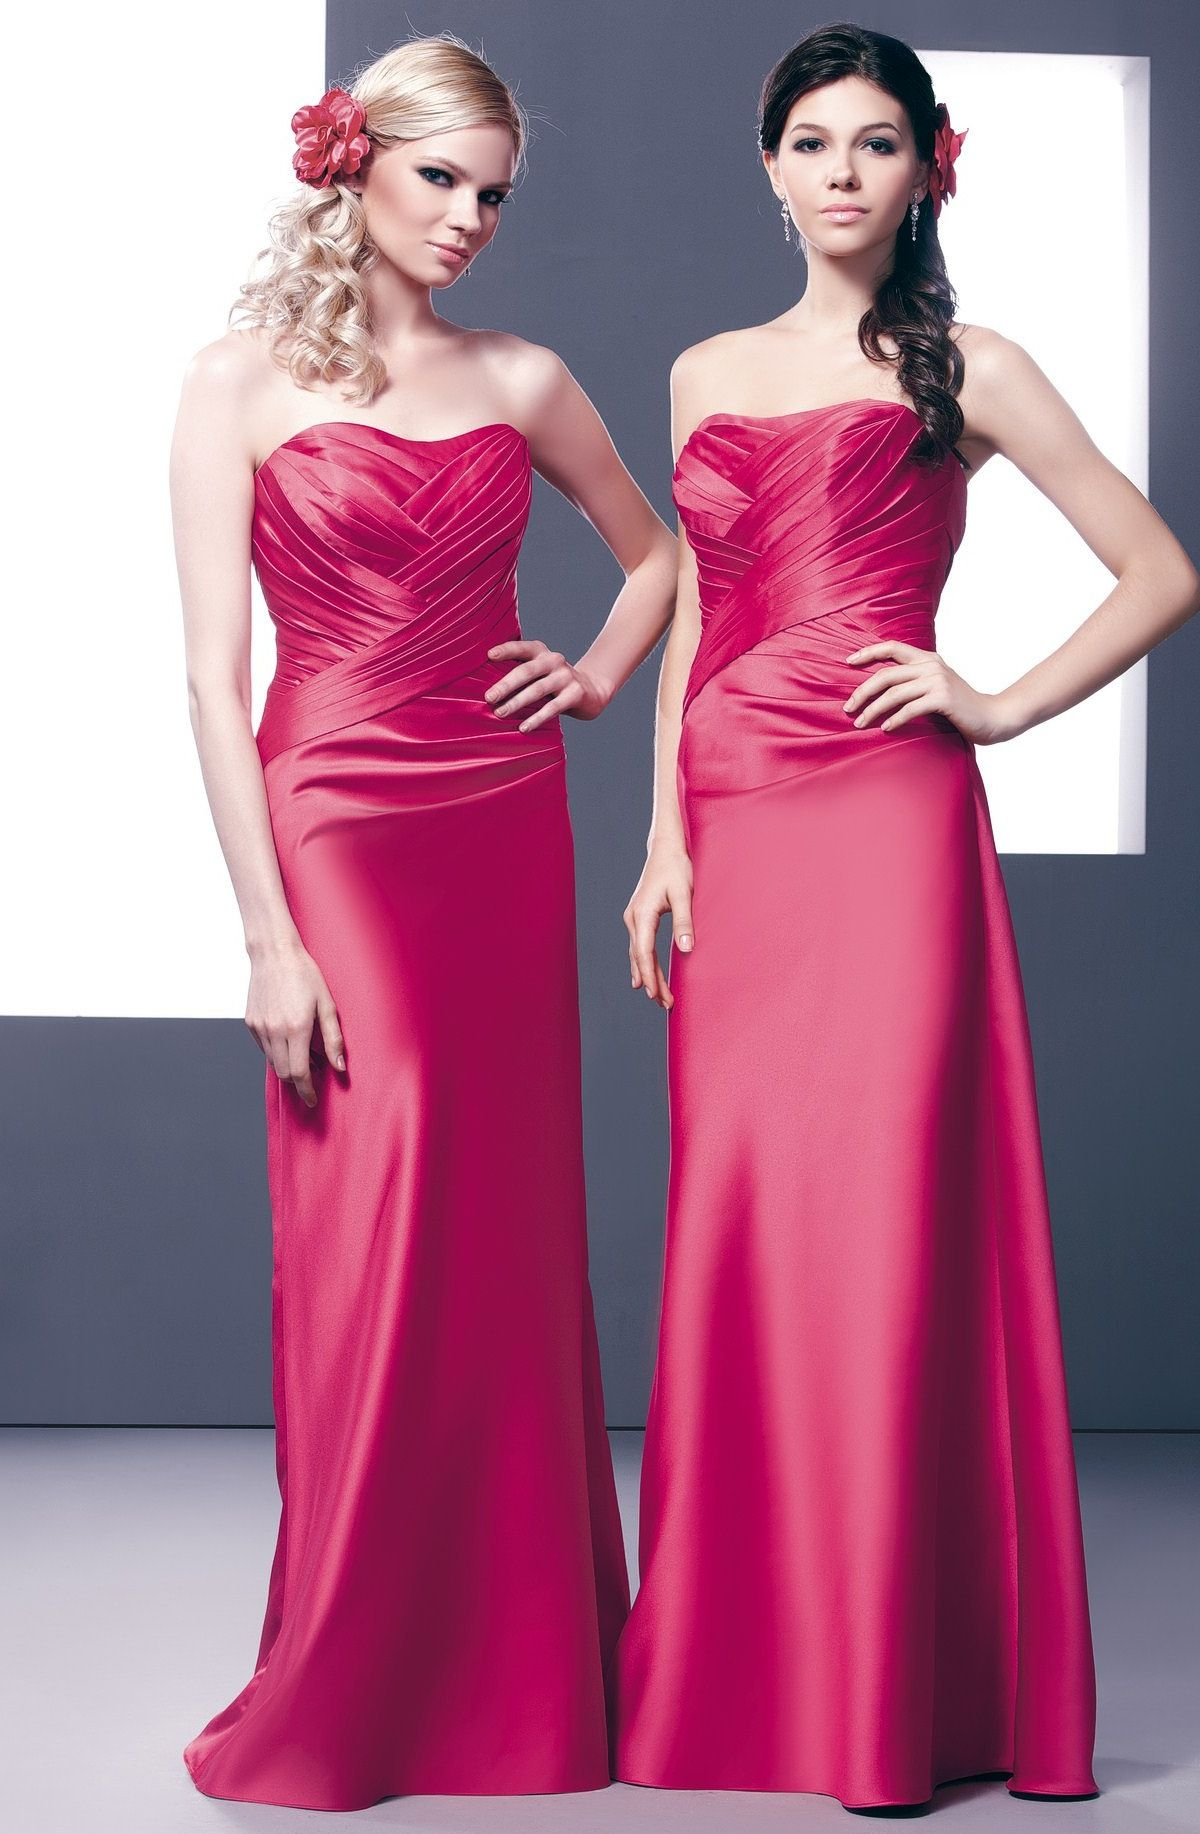 Hot Pink Bridesmaid Dresses  Admor Strapless Pink Credited ...